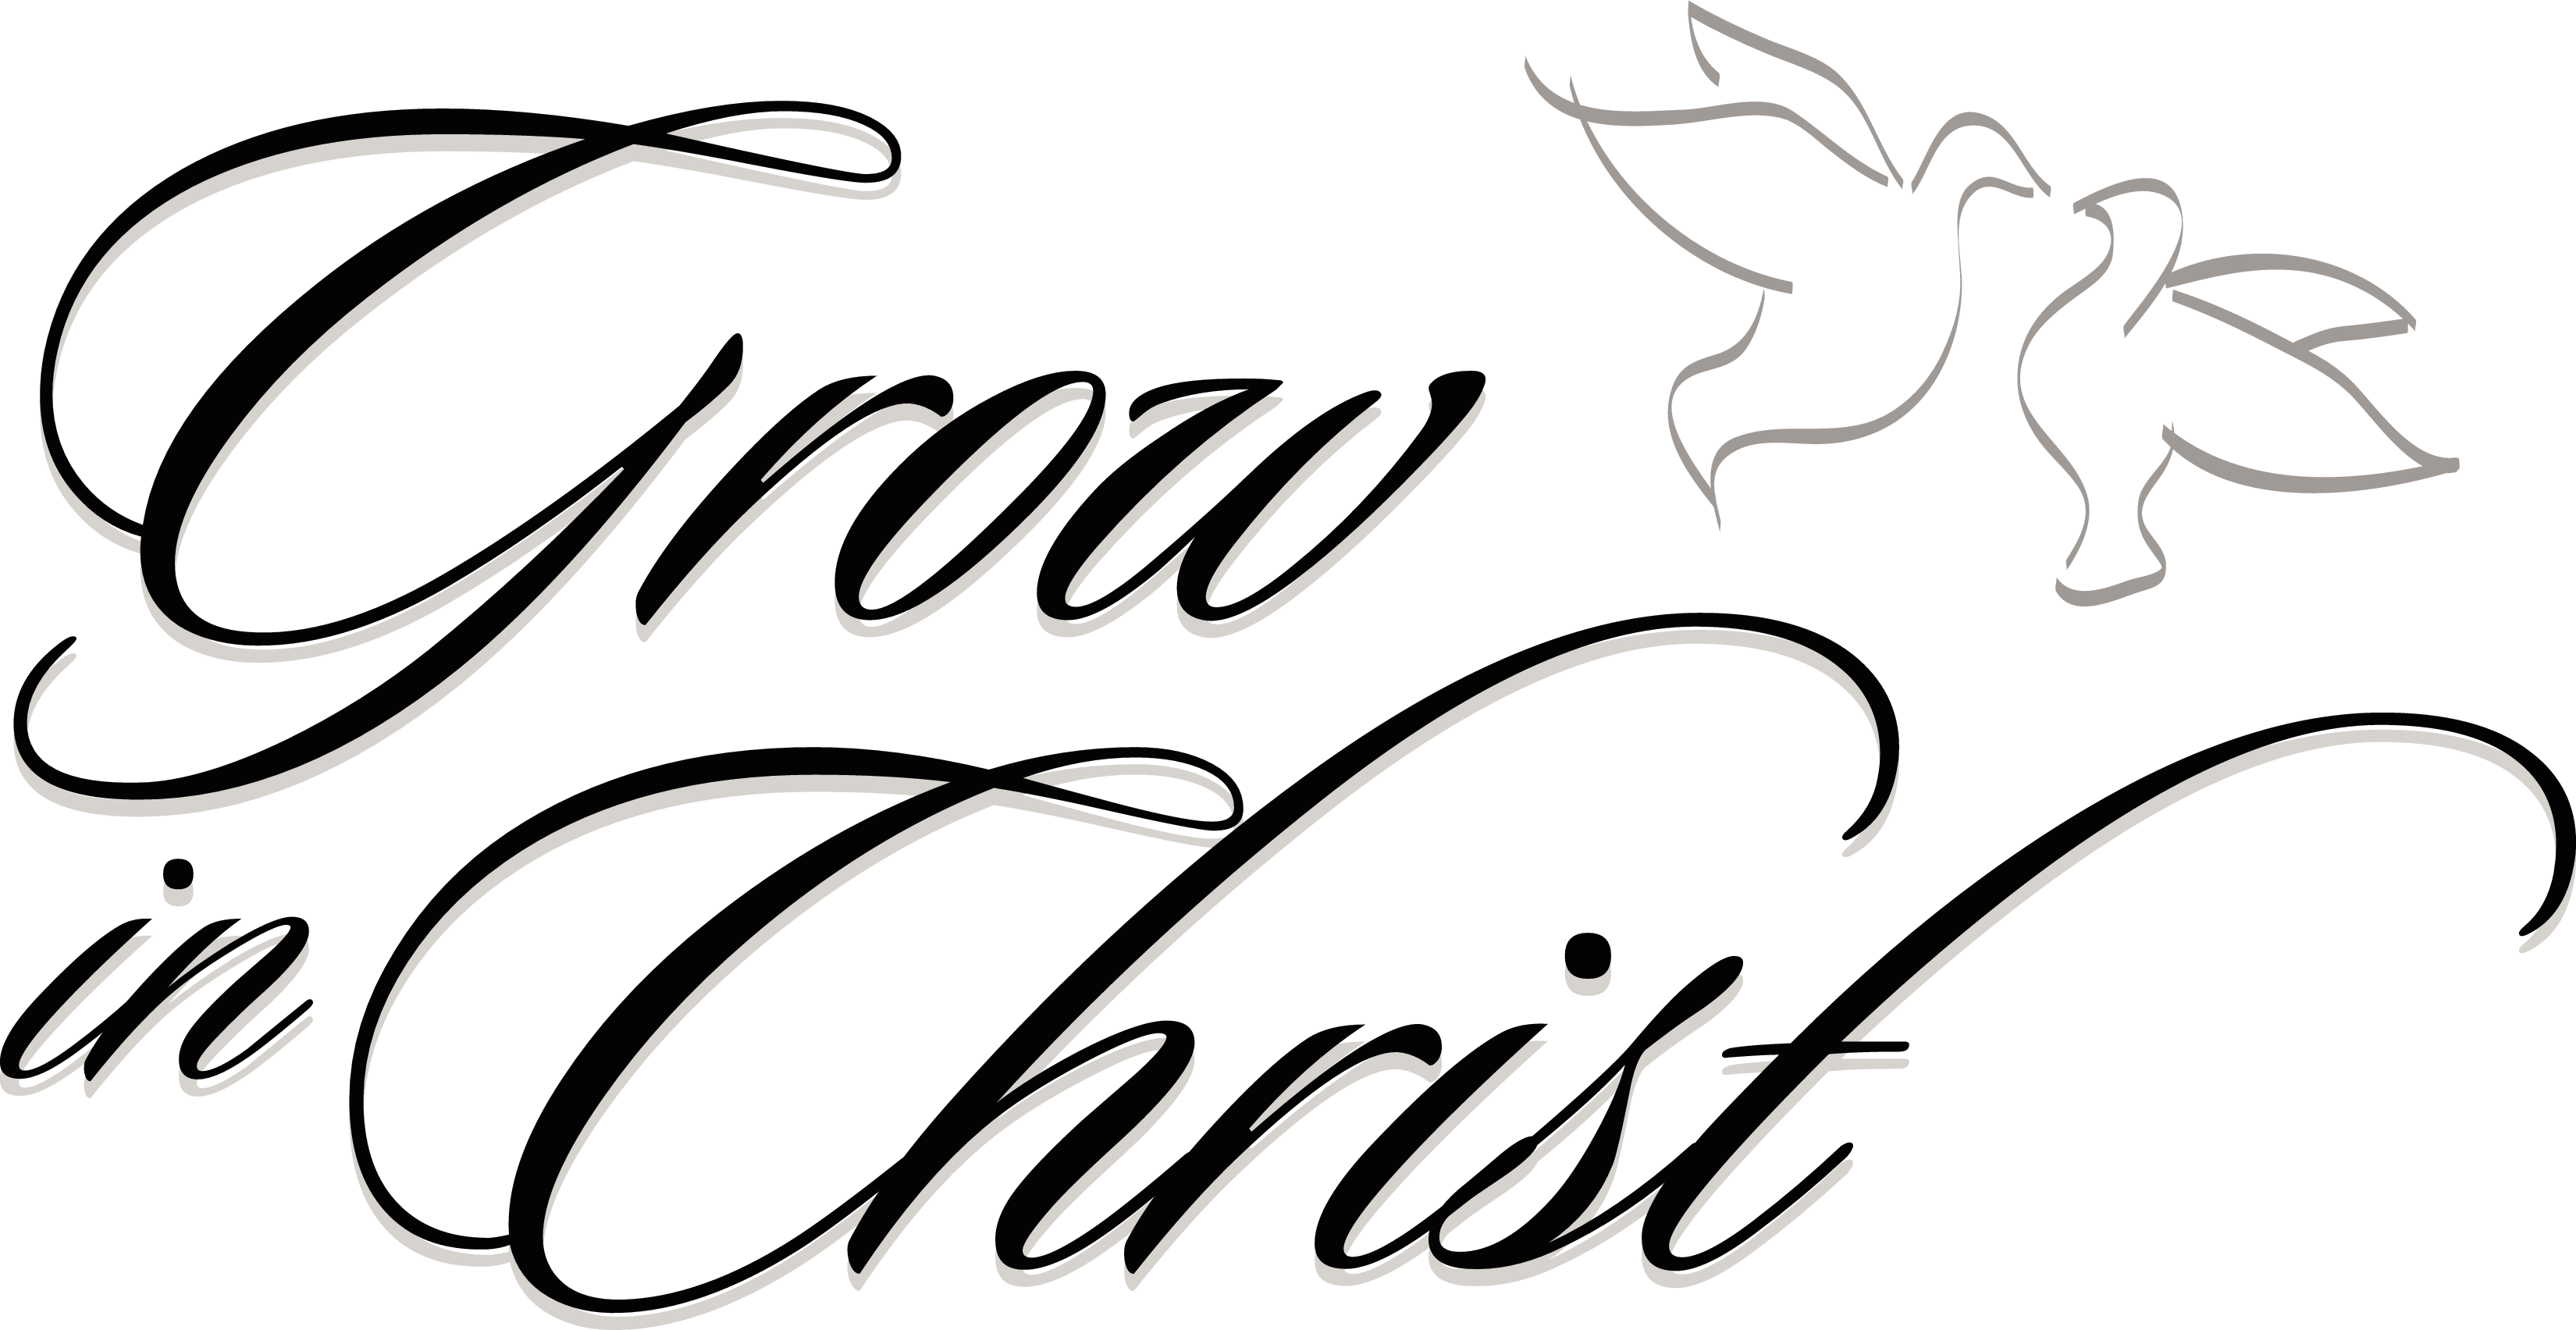 Free Christian Word Clipart.